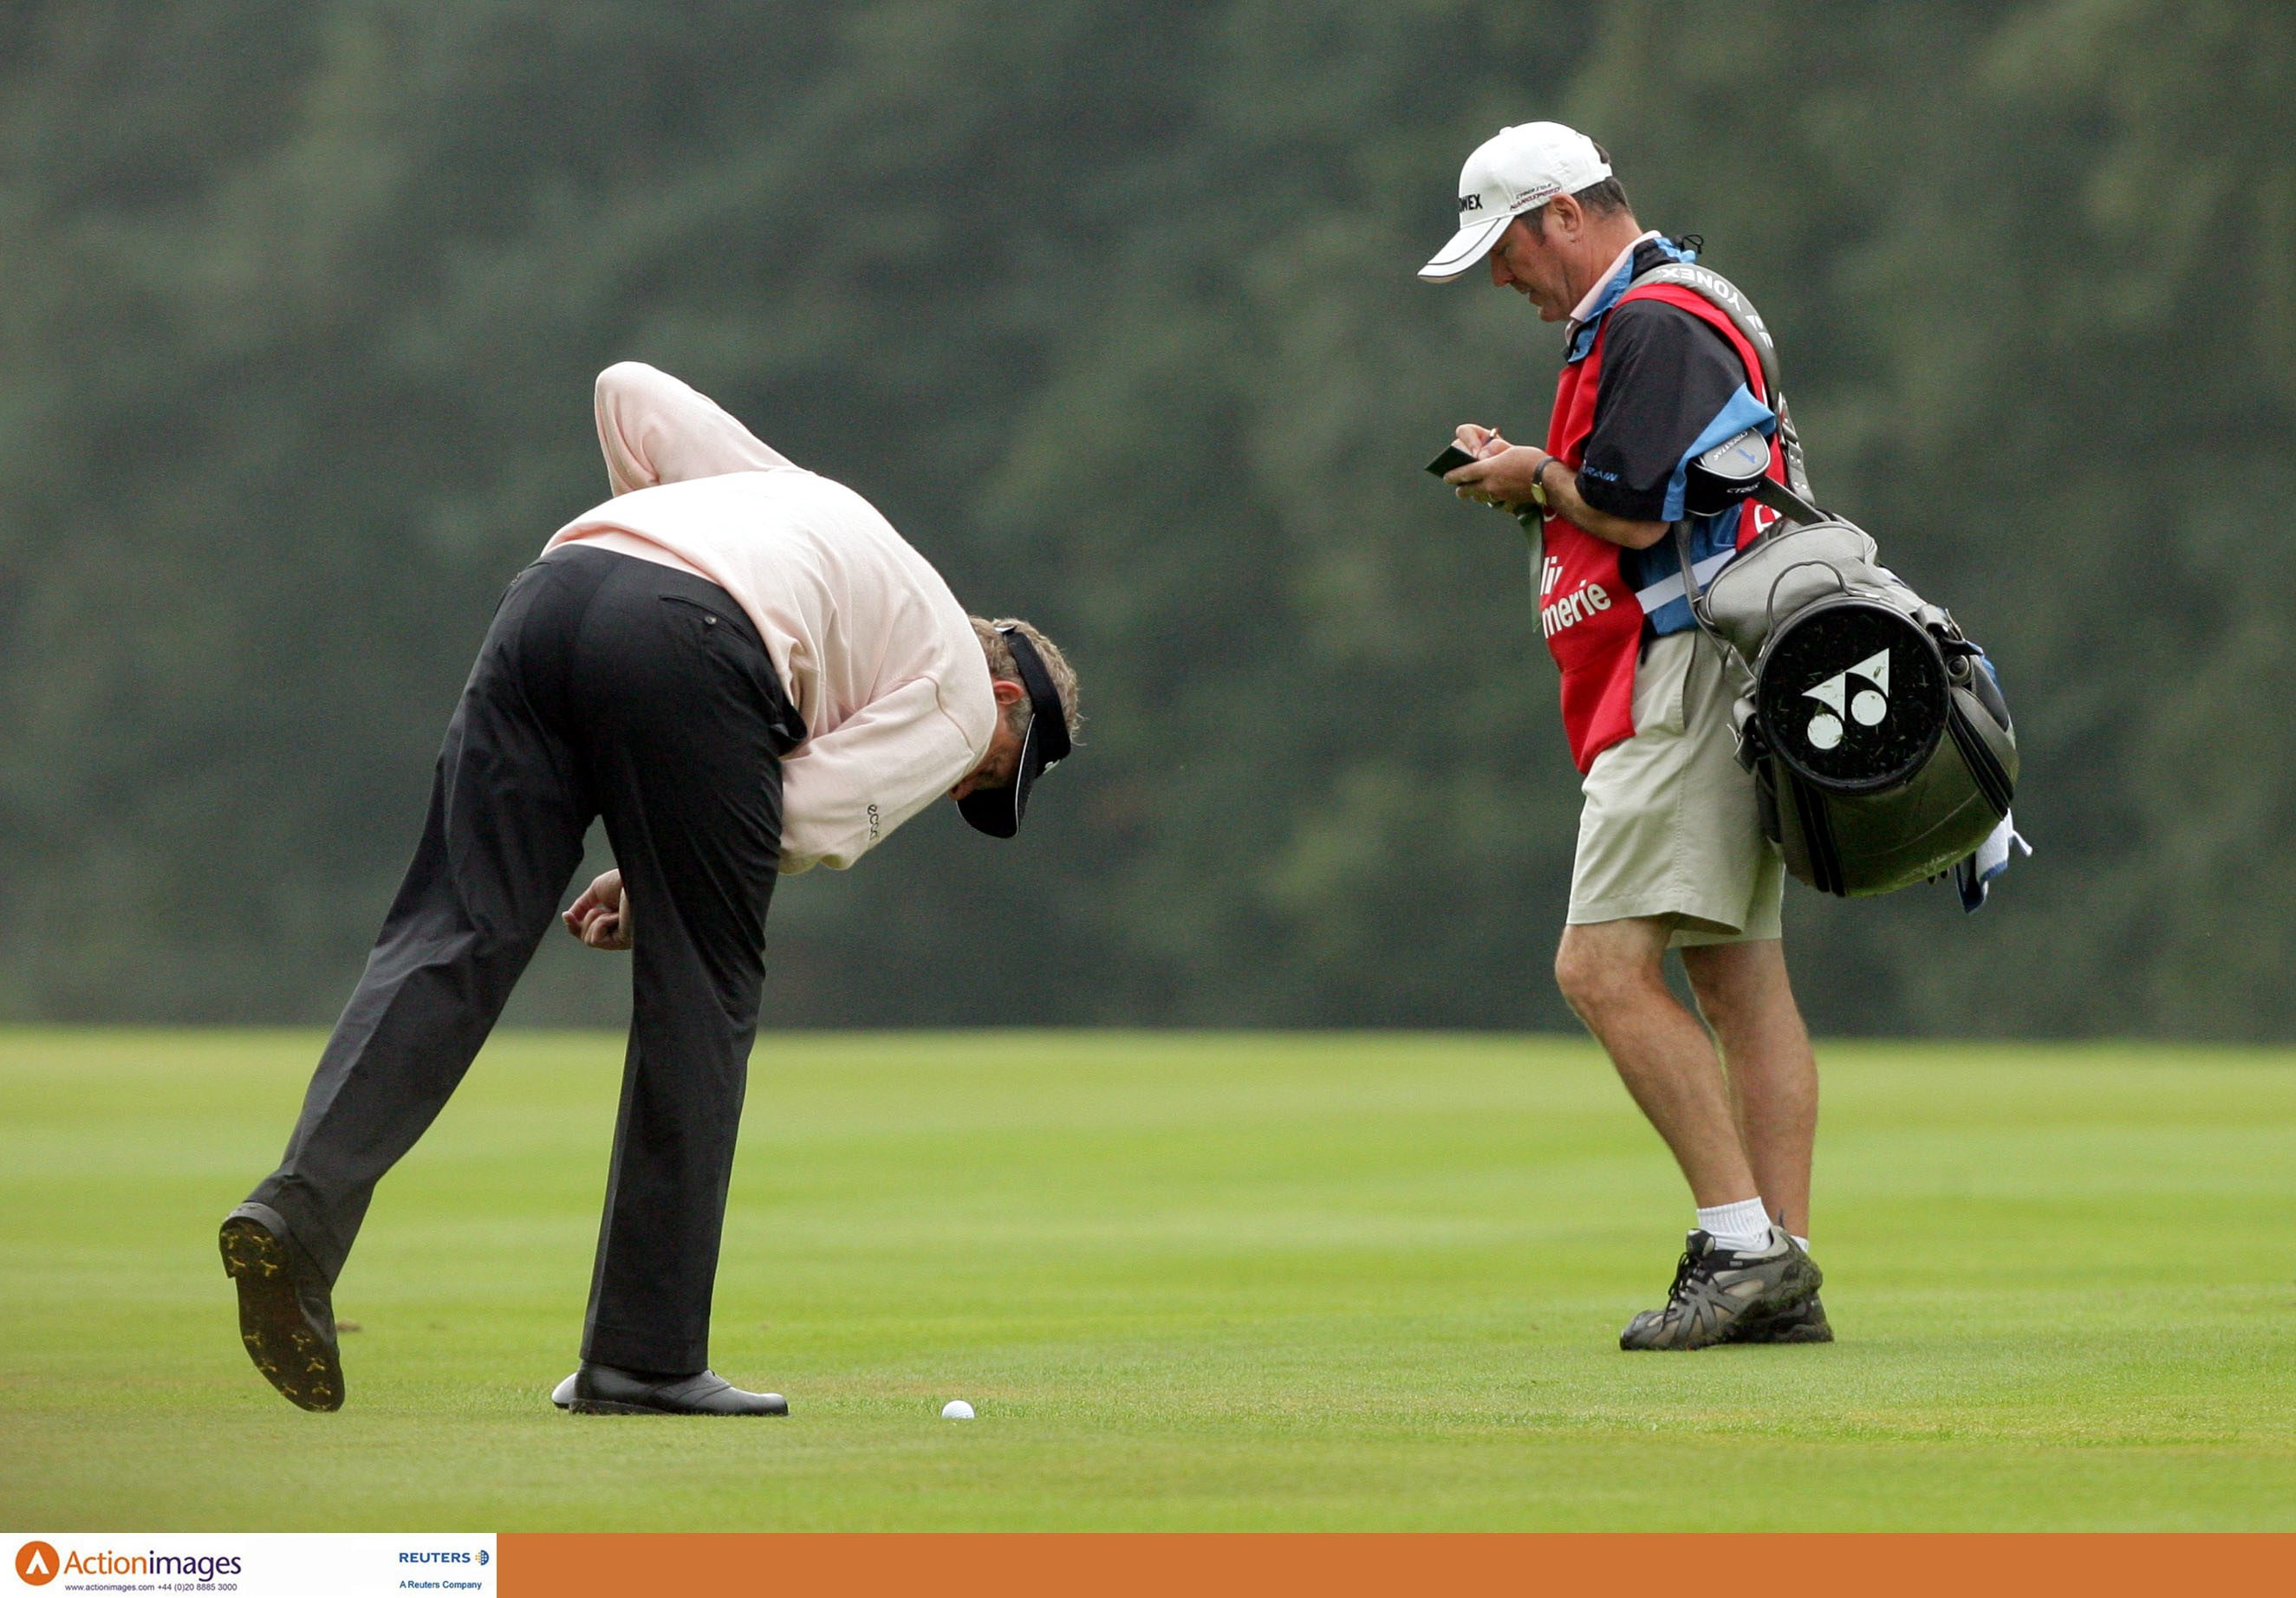 Golf ball in a divot on the fairway: why the rule will never change